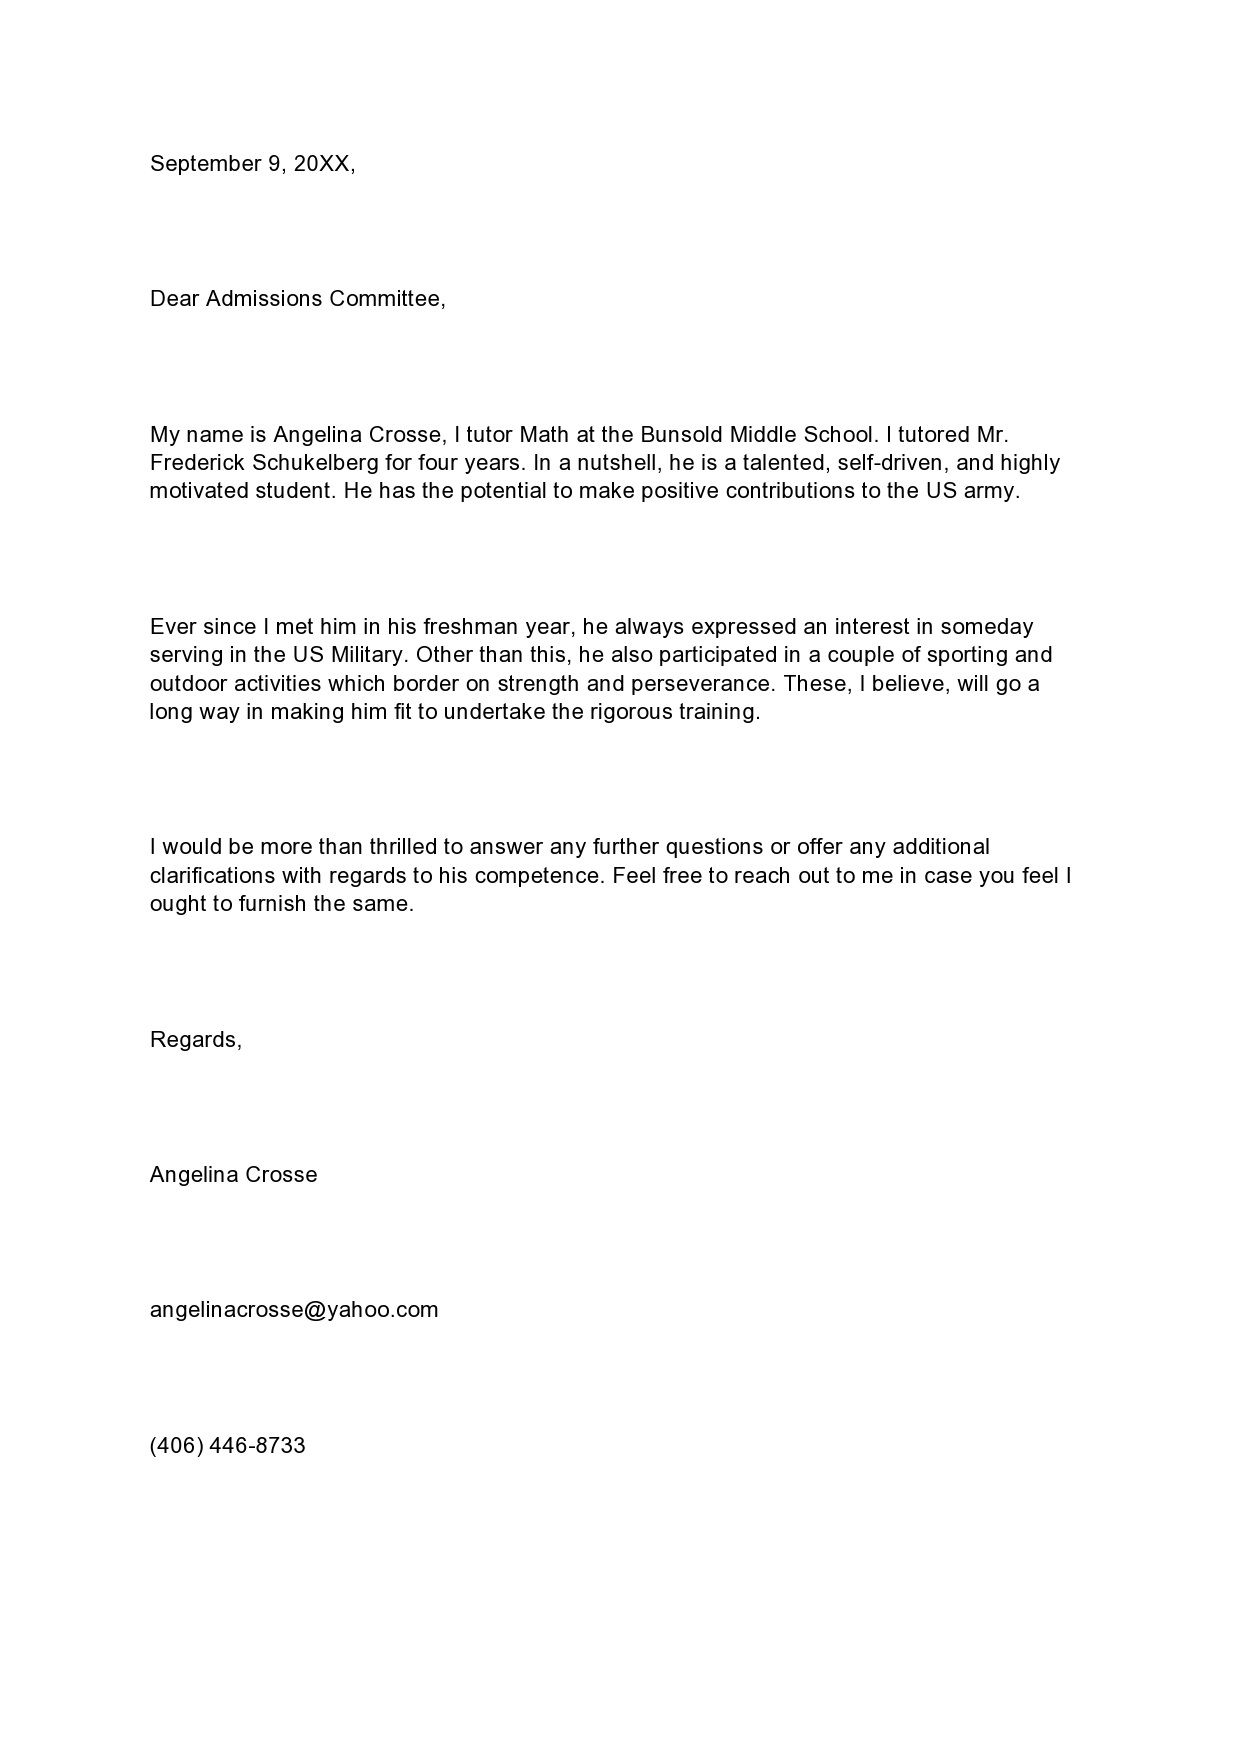 009 Wondrou Sample Request For Letter Of Recommendation Example  From Previou Employer NursingFull